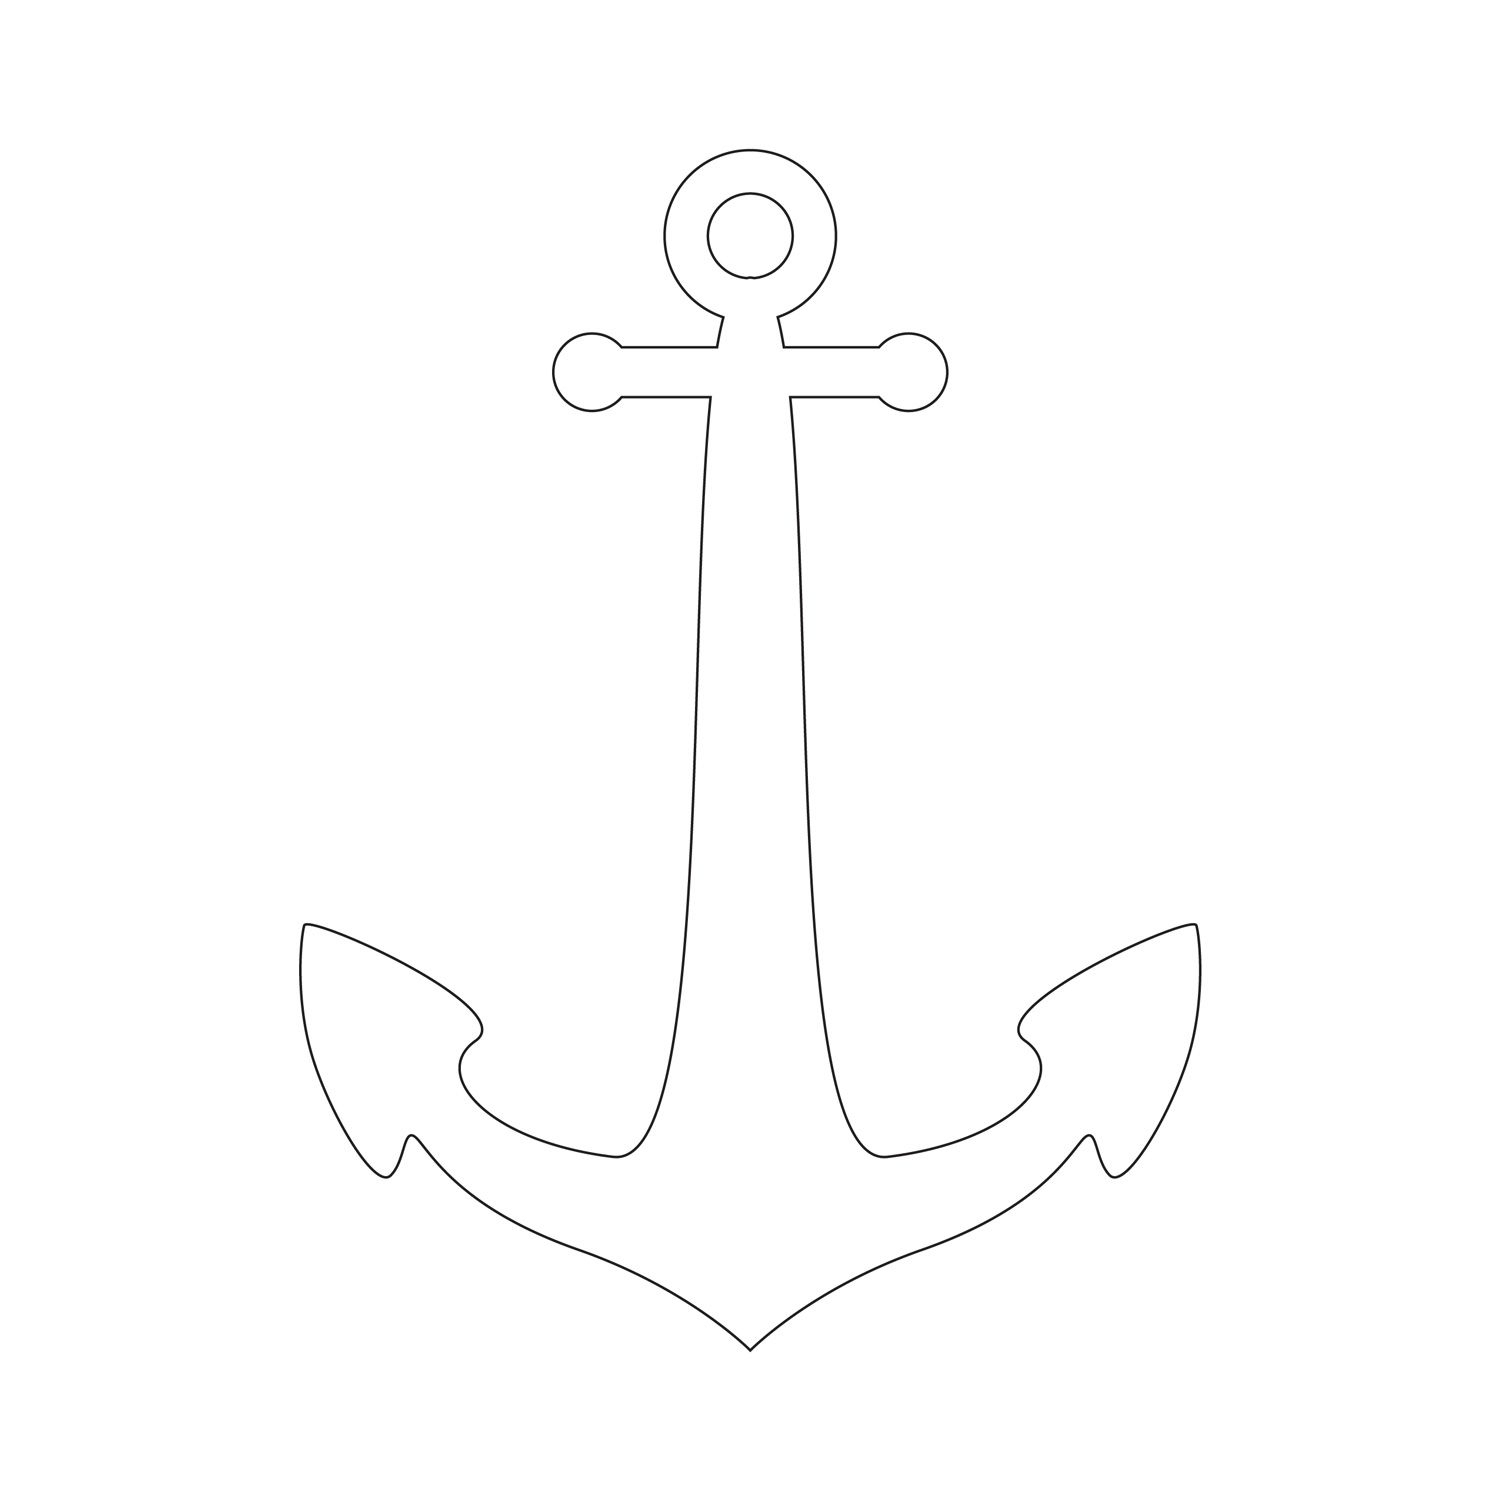 Anchor Stencil | Free Printable Stencil Templates | Wood Burning - Free Printable Anchor Template